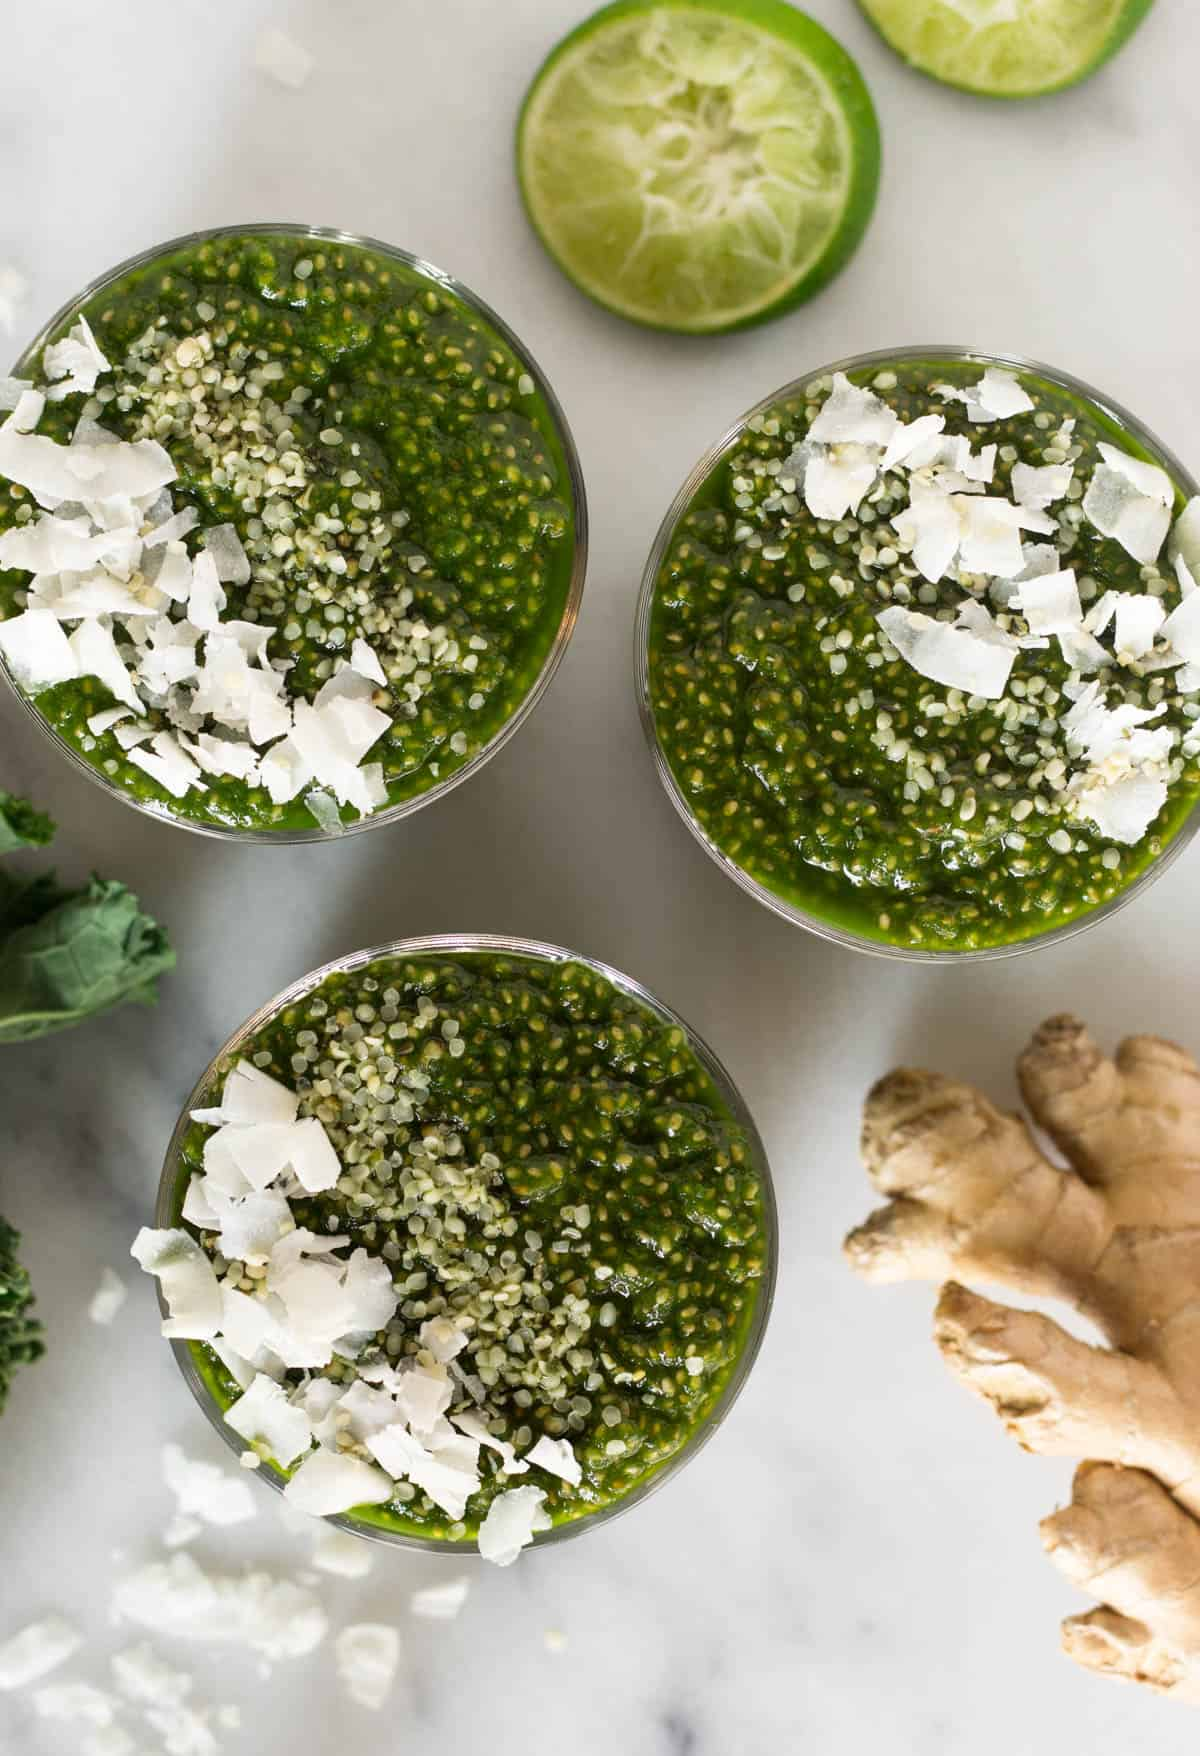 Overhead of 3 glasses of green juice chia puddings, ginger, and limes